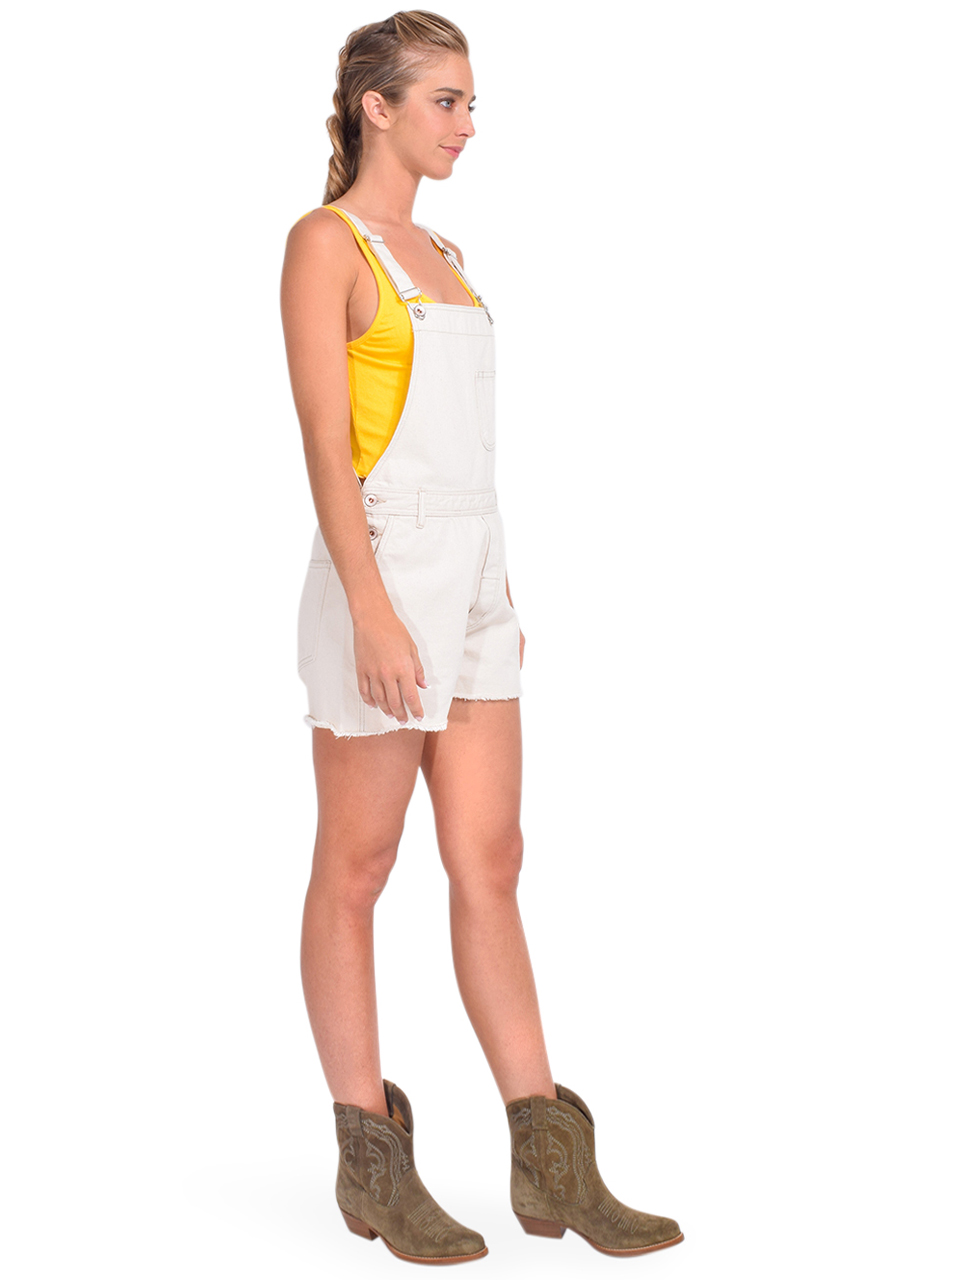 Bellerose Pachita Overall Shorts in Natural Side View